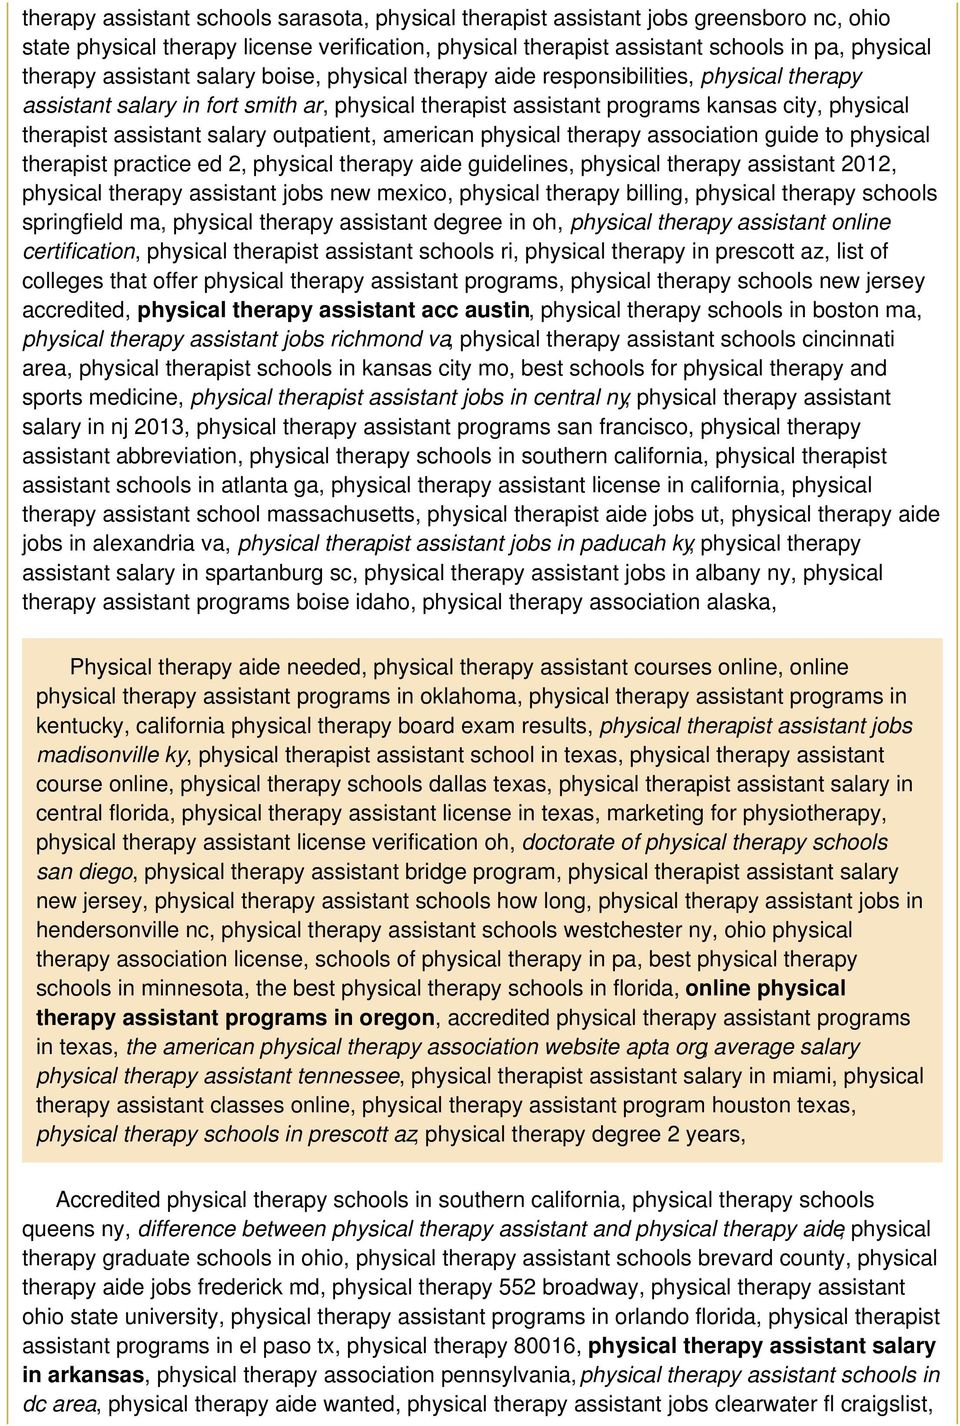 salary outpatient, american physical therapy association guide to physical therapist practice ed 2, physical therapy aide guidelines, physical therapy assistant 2012, physical therapy assistant jobs